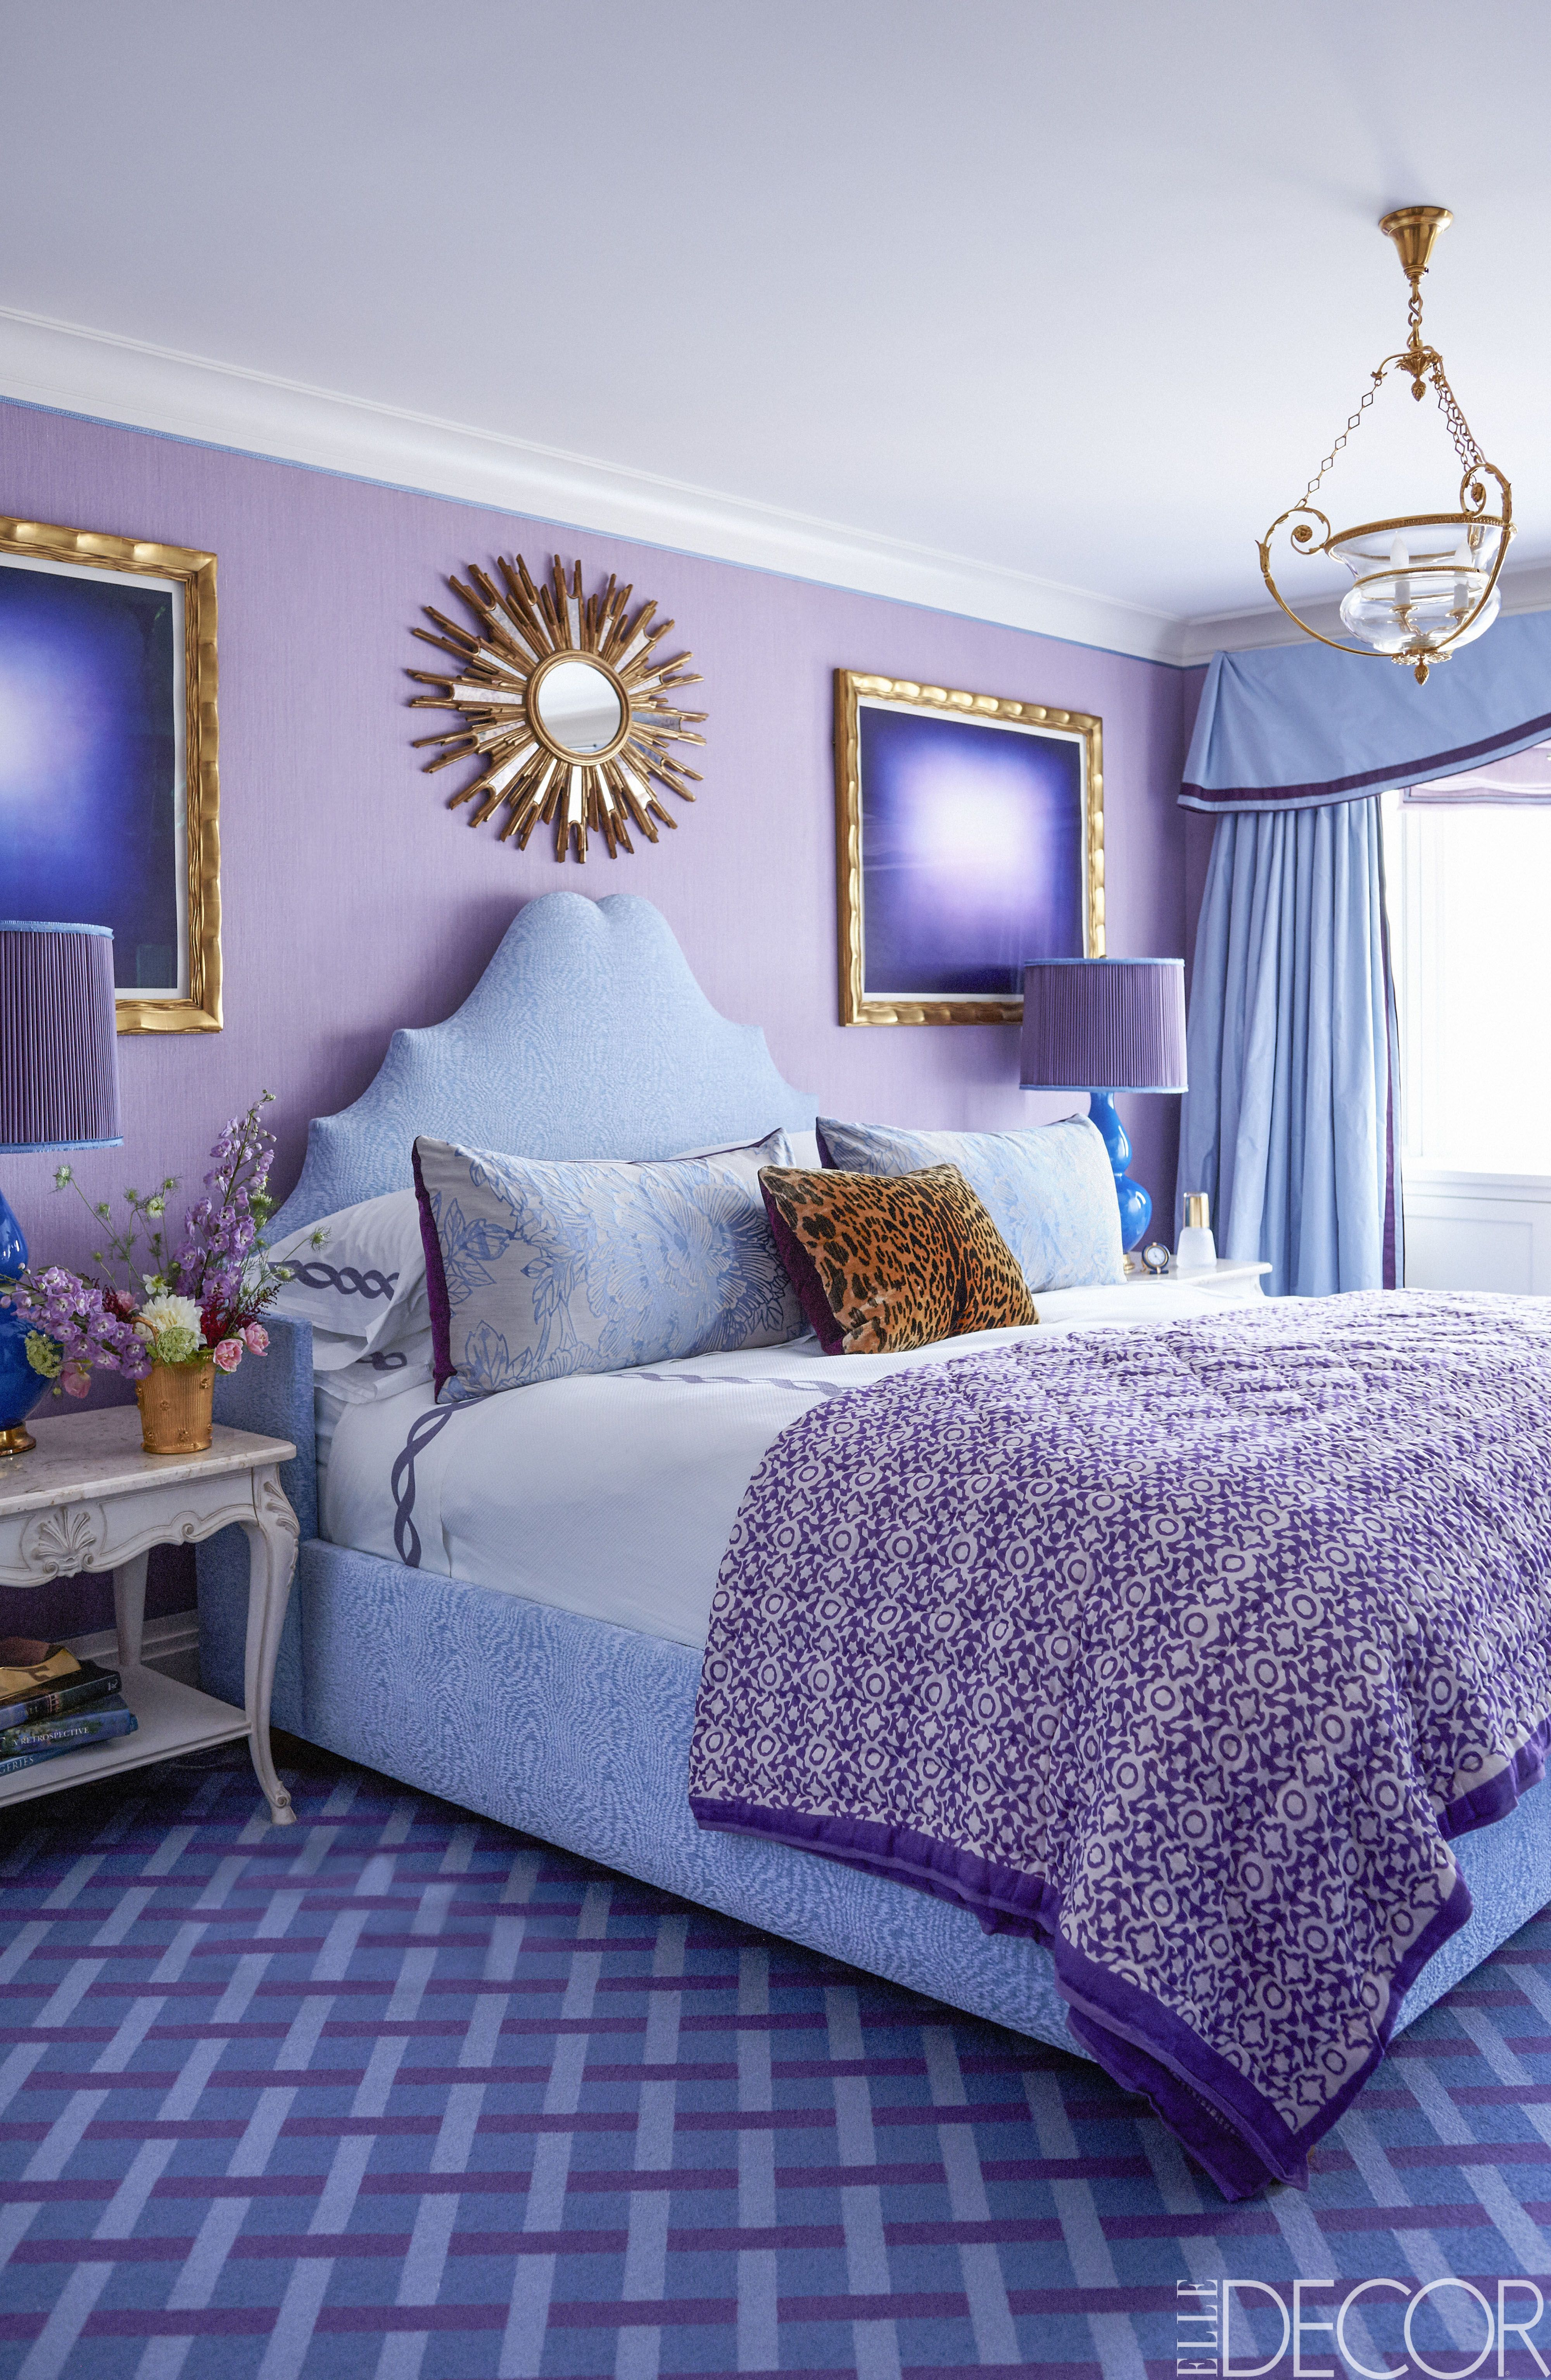 25 Purple Room Decorating Ideas - How To Use Purple Walls throughout Alvis Traditional Metal Wall Decor (Image 1 of 30)